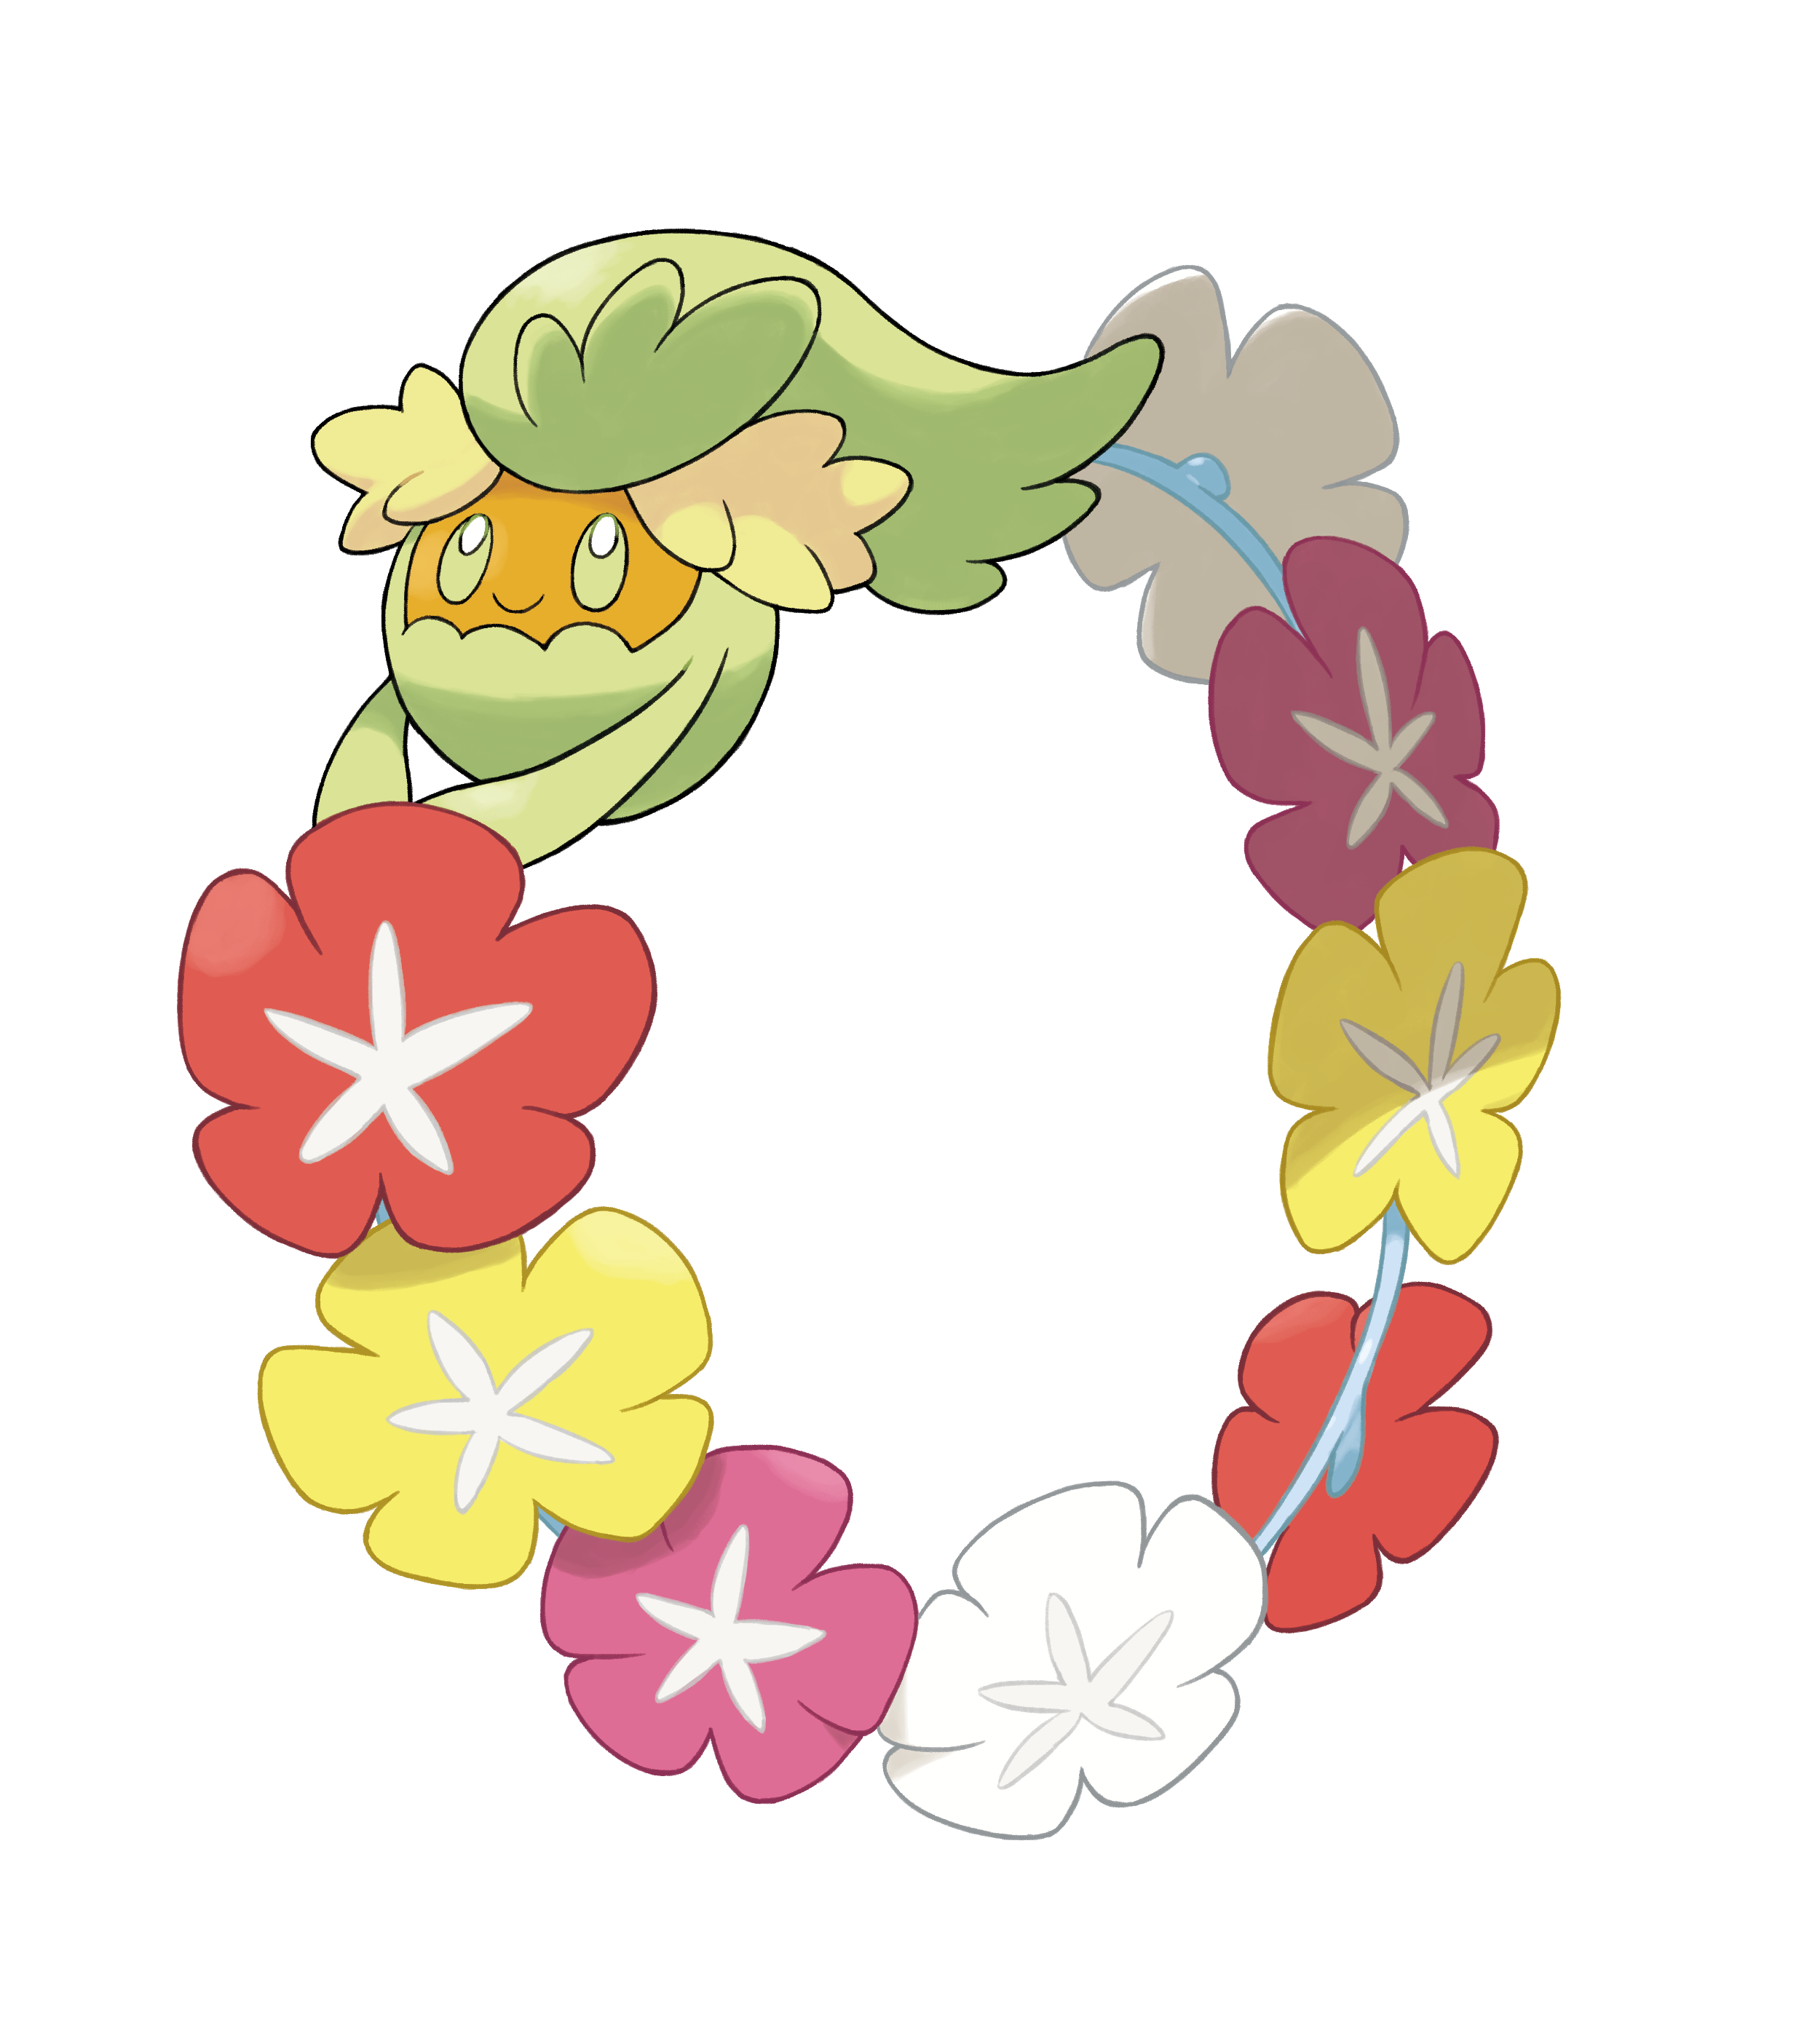 Flower reaching for sun clipart picture transparent stock Comfey - Pokémon Wiki - Neoseeker picture transparent stock